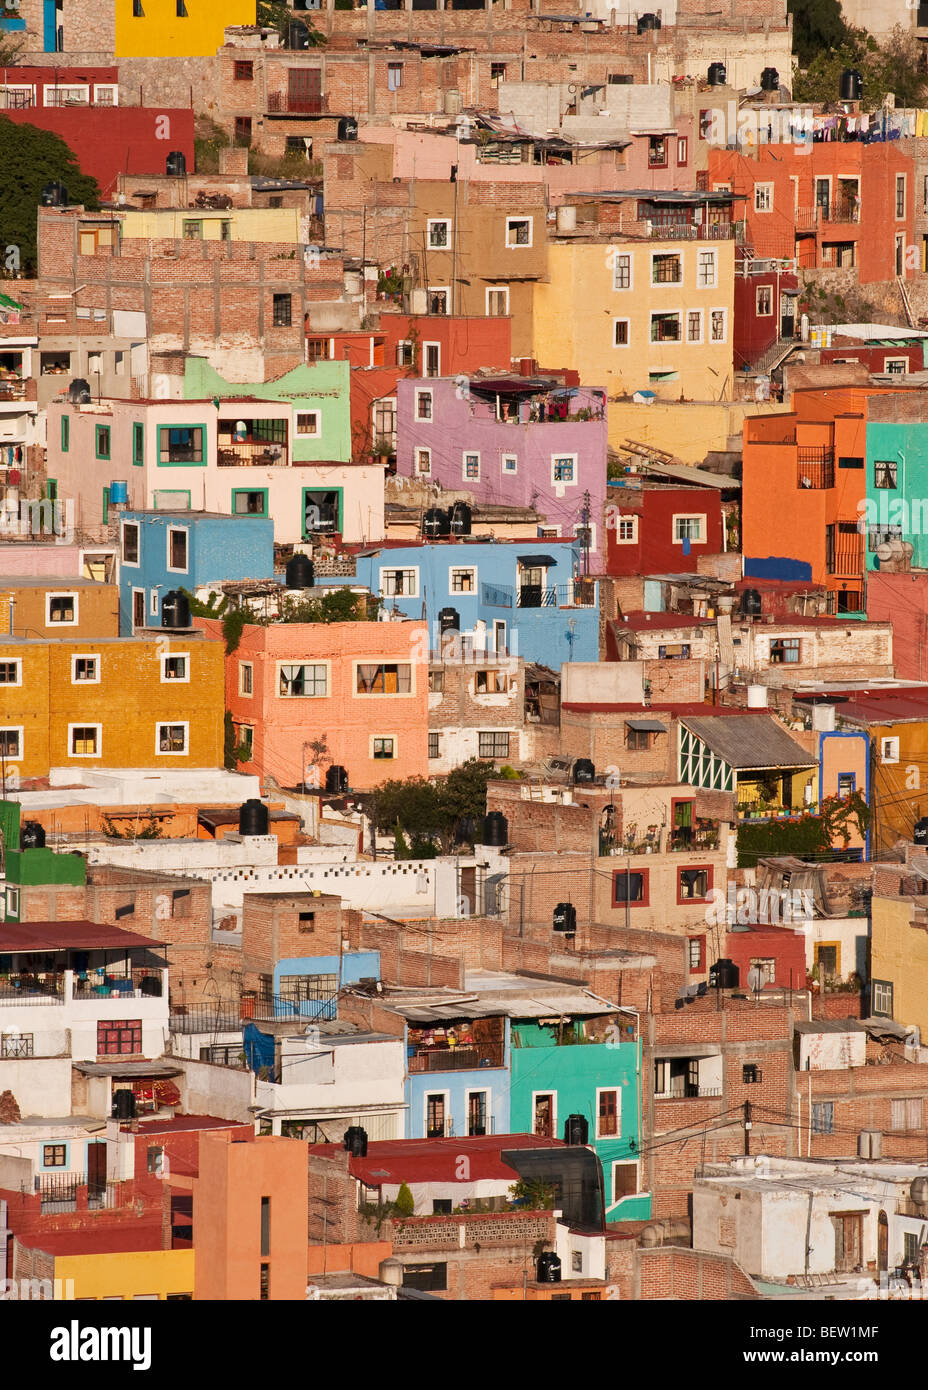 Houses on a hillside in Guanajuato, Mexico. - Stock Image